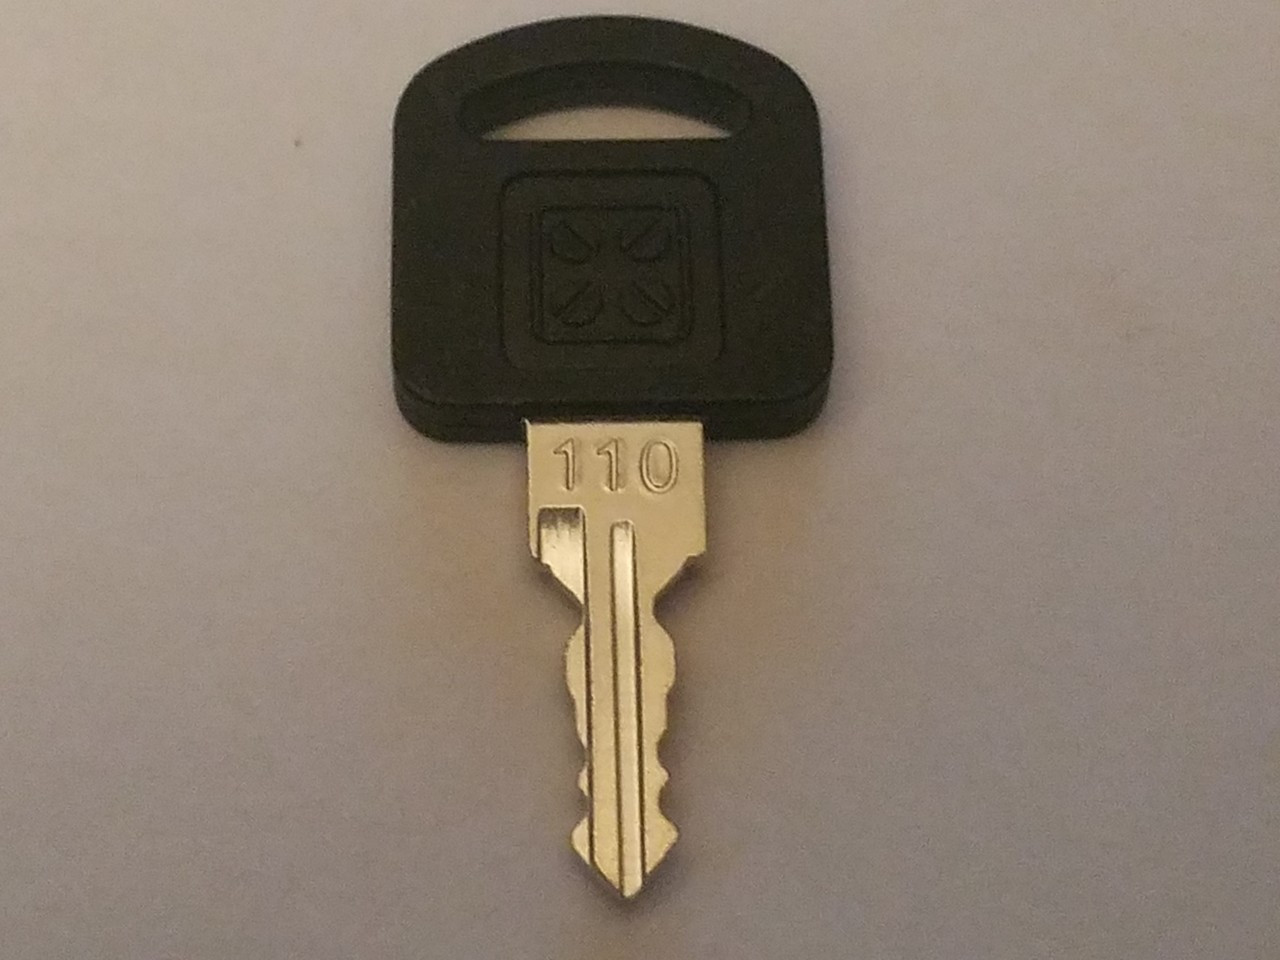 Armstrong K5-110 cut key